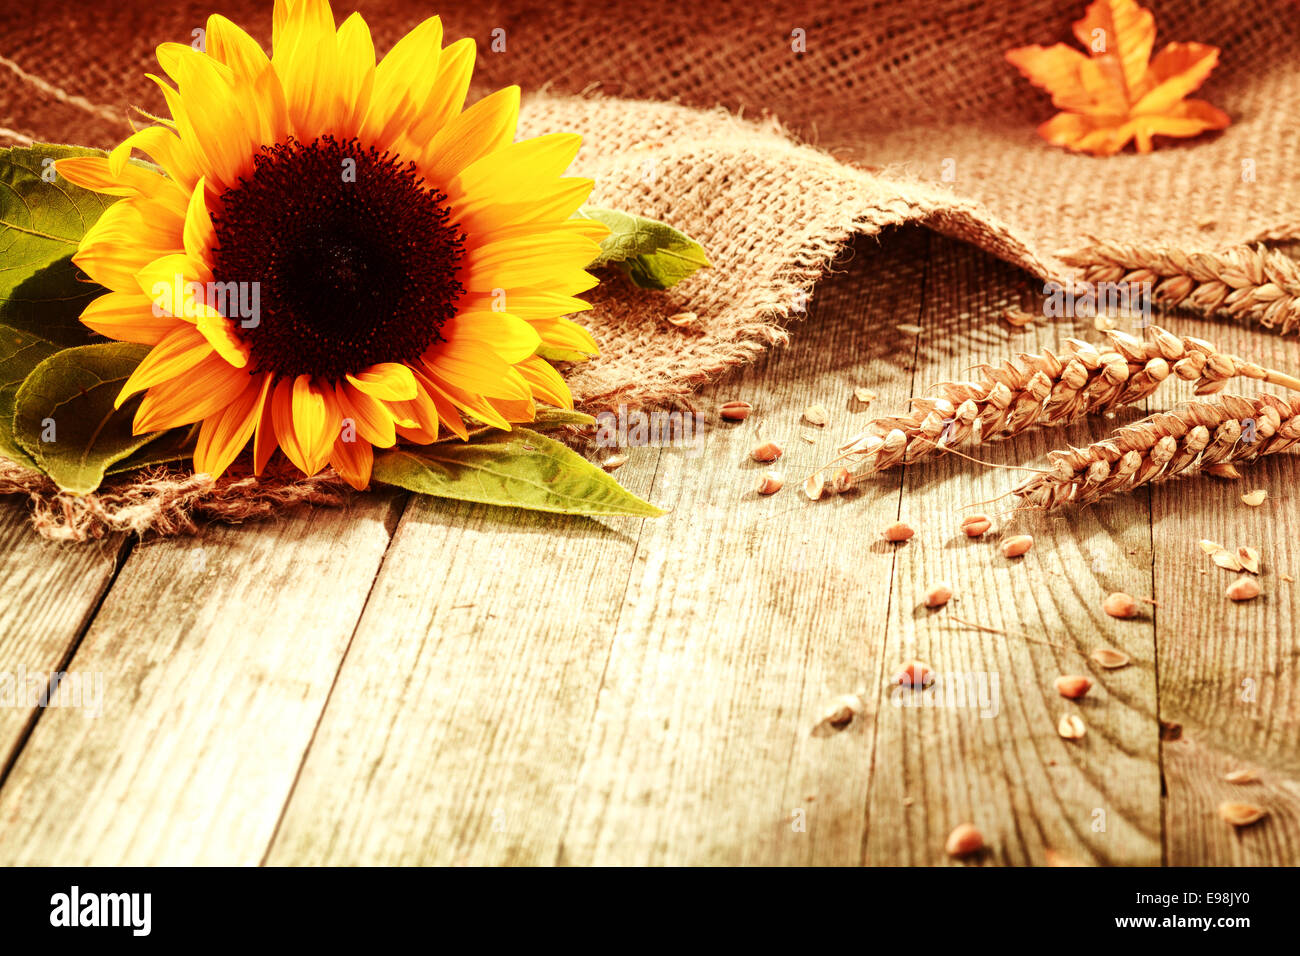 Rustic Background With A Bright Colorful Yellow Sunflower And Ripe Golden Ears Of Wheat On Textured Burlap Fabric Old Wooden